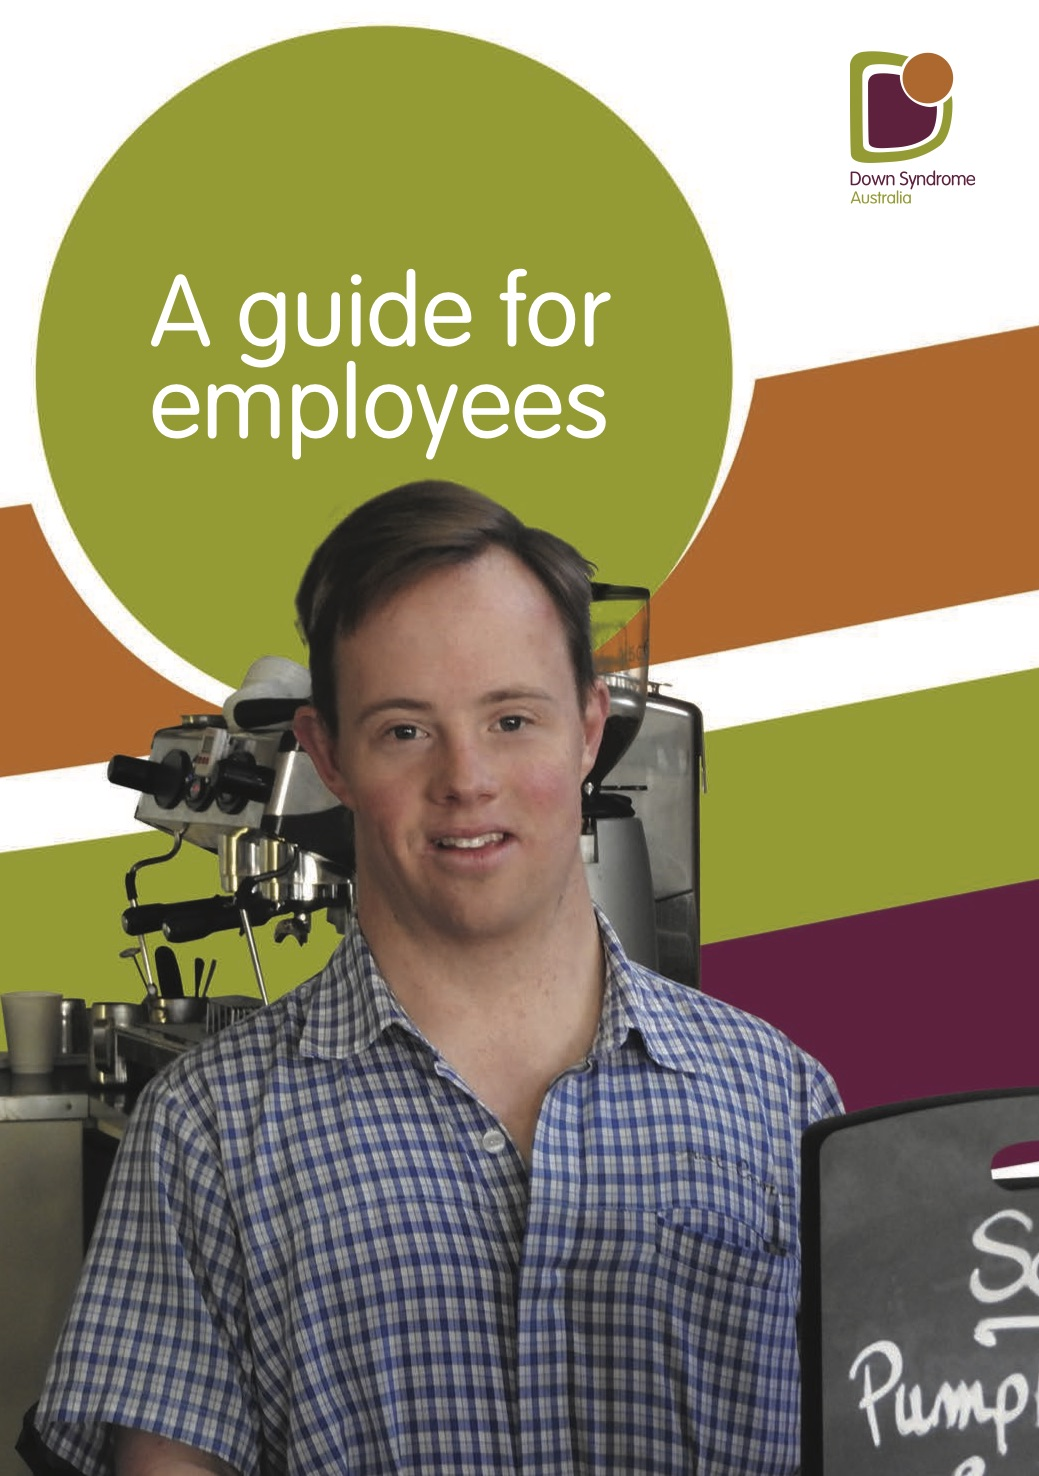 Guide For Employees Resource (Plain English)